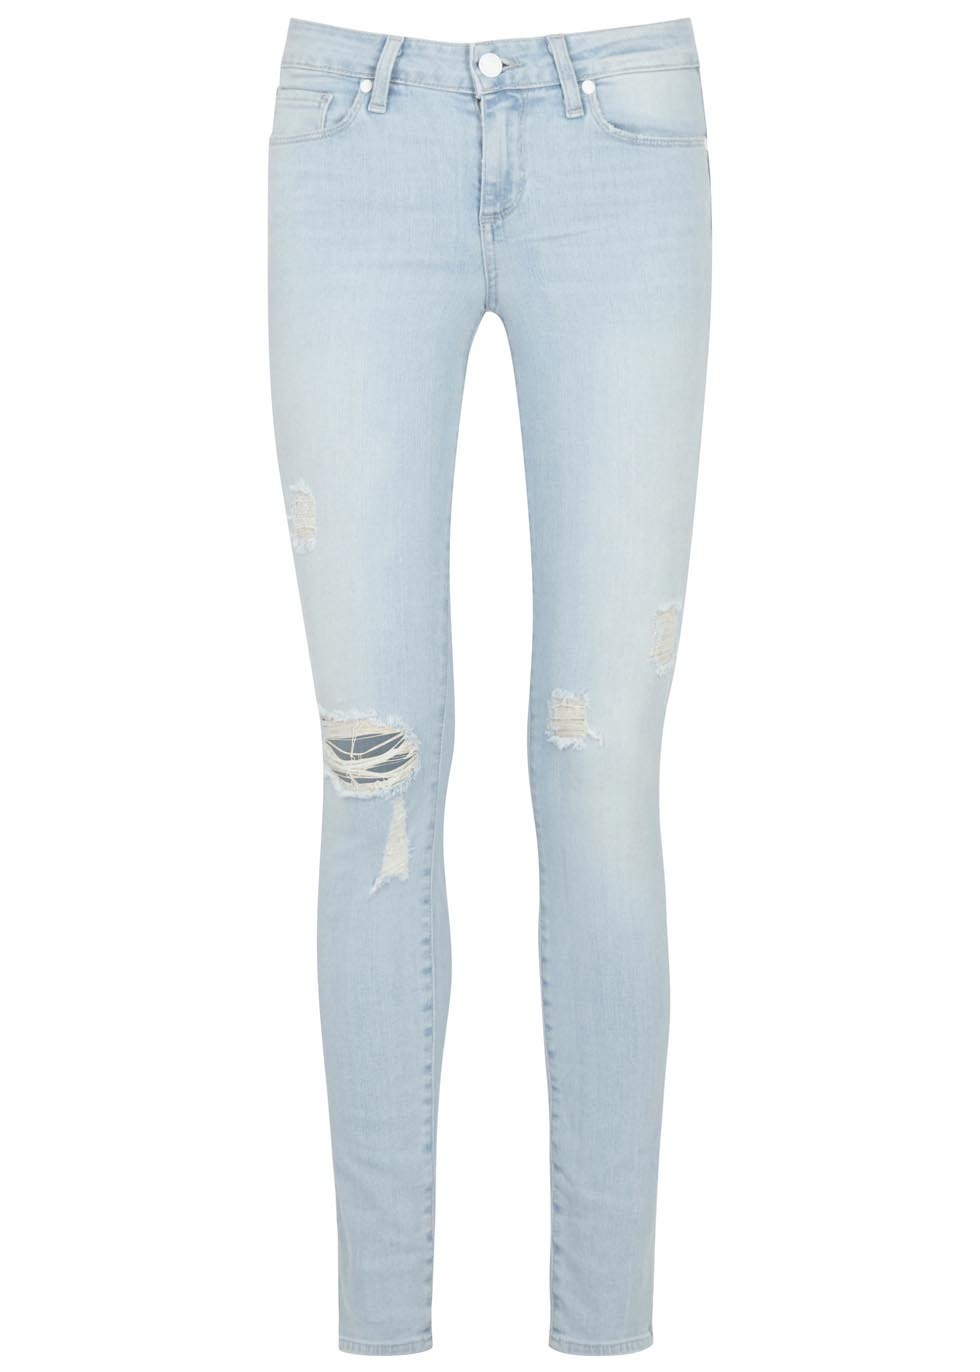 Verdugo Pale Blue Distressed Skinny Jeans - style: skinny leg; length: standard; pattern: plain; waist: low rise; pocket detail: traditional 5 pocket; predominant colour: pale blue; occasions: casual; fibres: cotton - stretch; texture group: denim; pattern type: fabric; jeans detail: rips; season: s/s 2015; wardrobe: basic